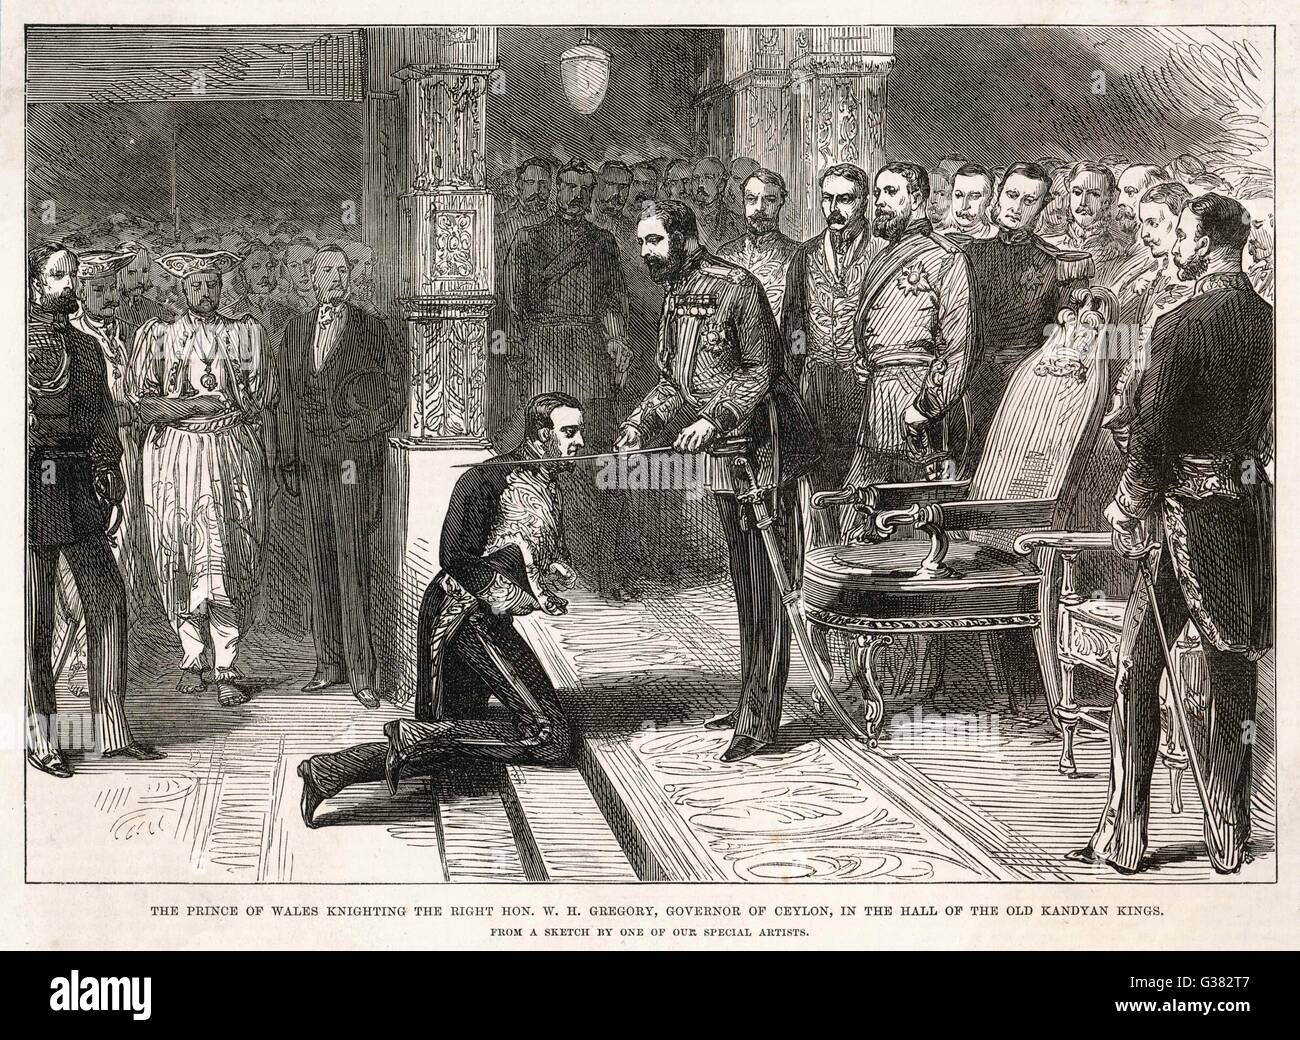 Edward, Prince of Wales,  confers knighthood on the  Governor of Ceylon, Sir William Henry Gregory (1817-1892). - Stock Image